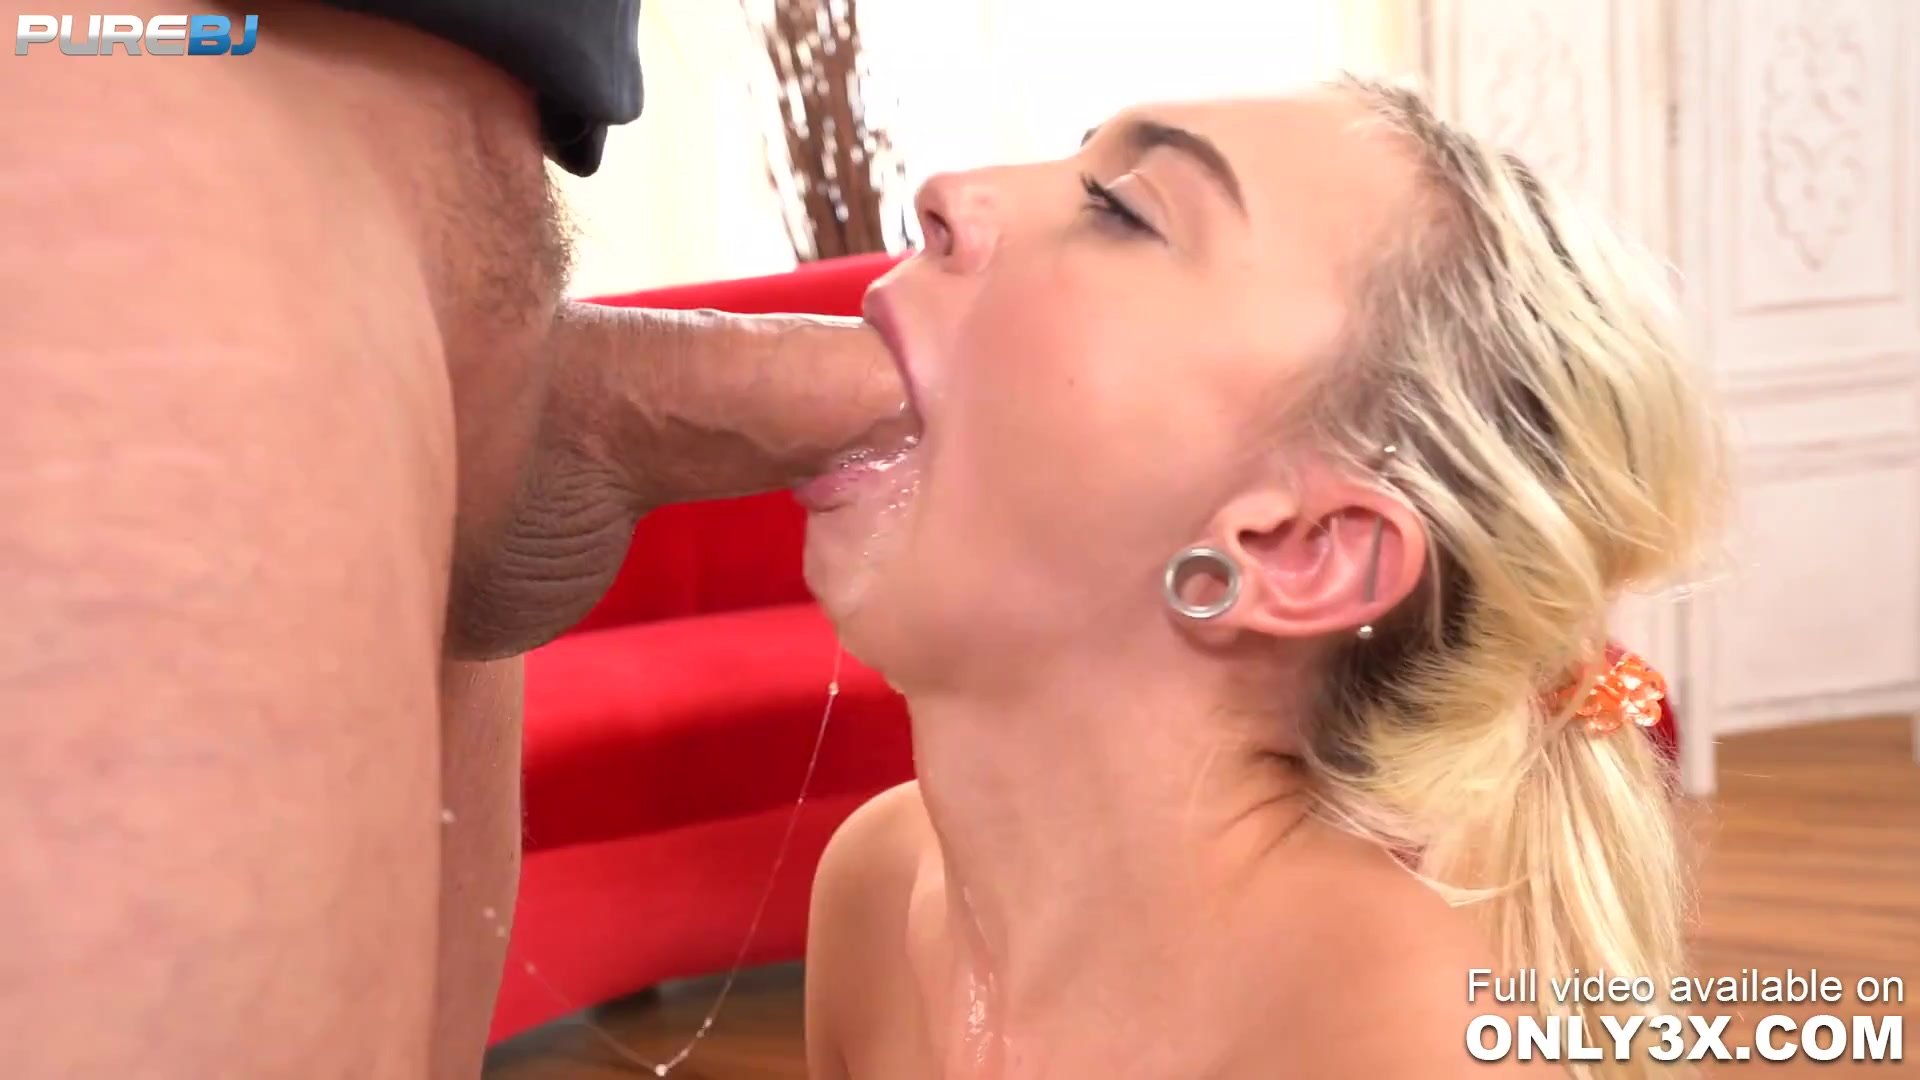 Slim babe Chloe Temple hungry for a huge thick cock - by Only3x - scene by PureBJ powered by Only3x